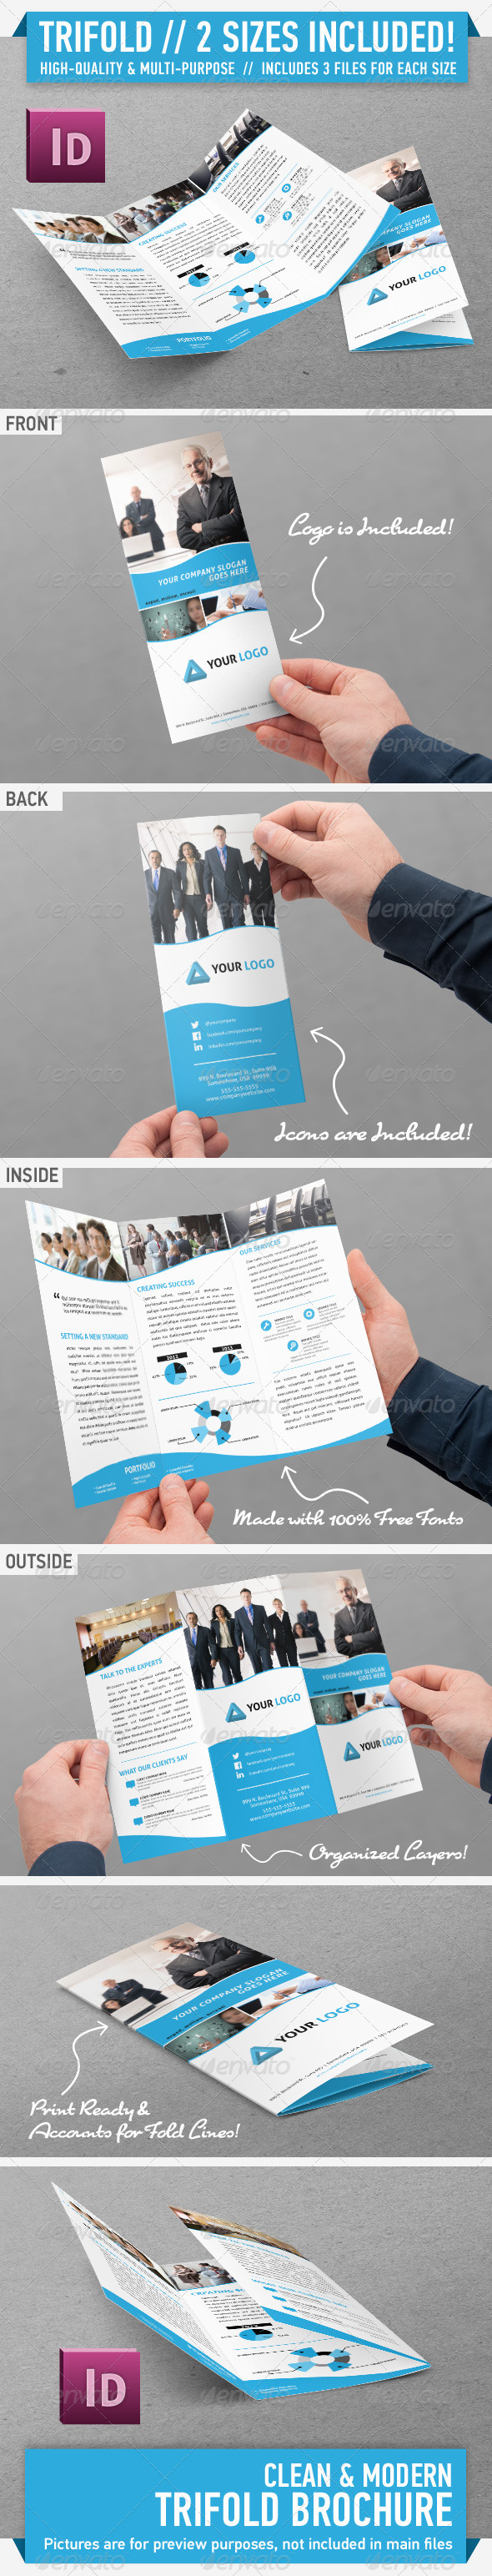 Clean Modern Trifold Brochure - Vol. 1 - Corporate Brochures